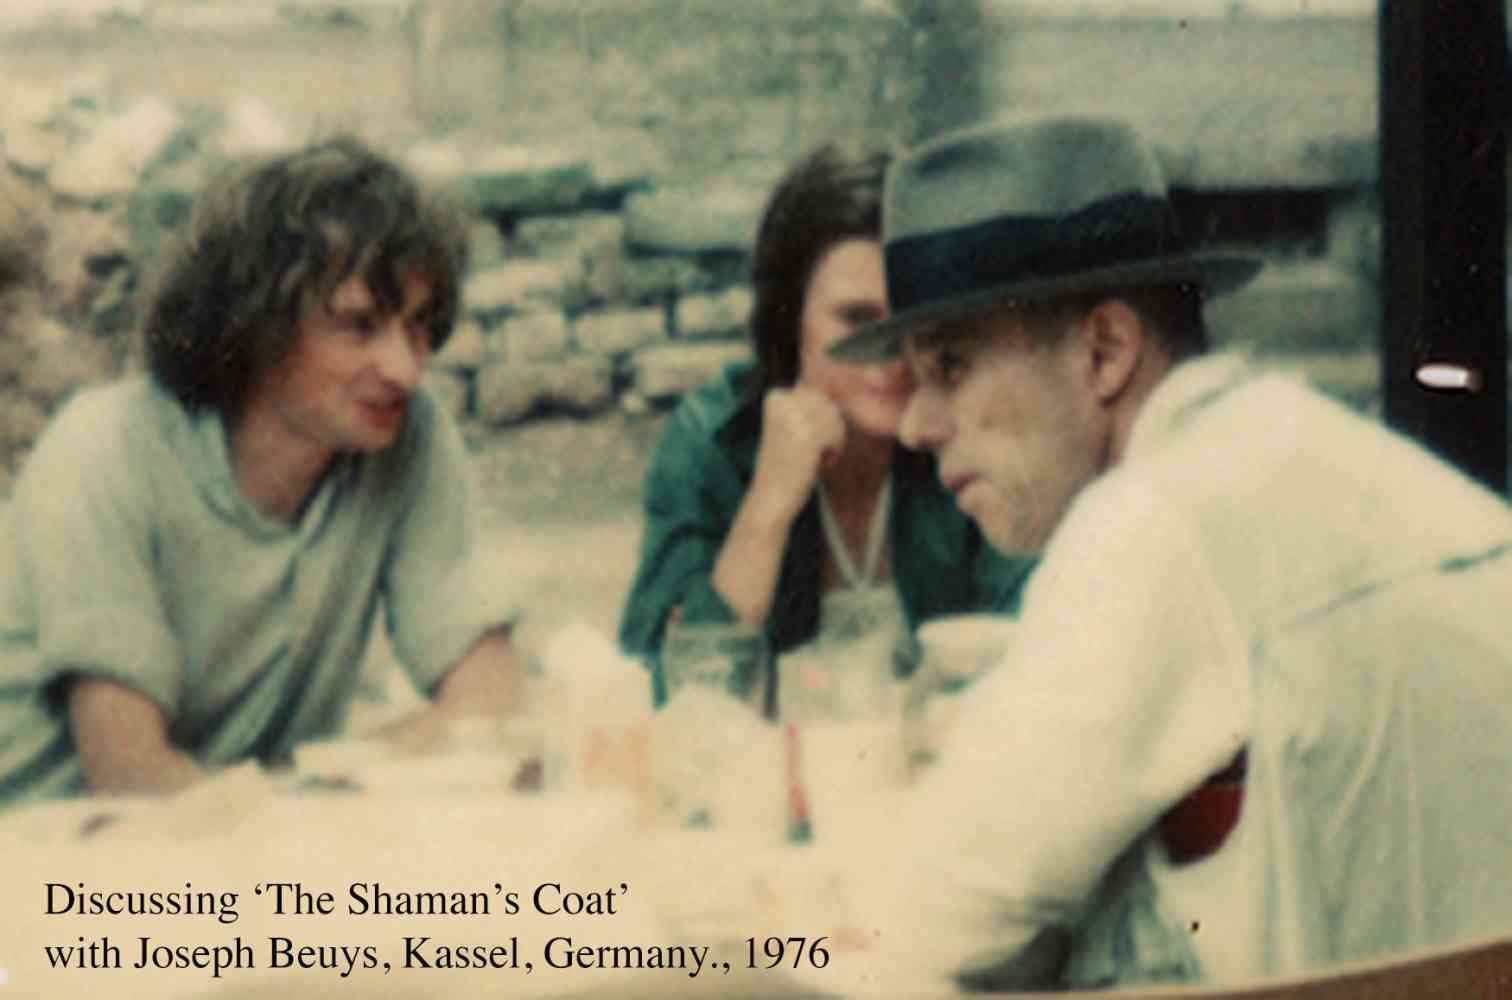 Historic discussion with Joseph Beuys  during exhibition, Kasel Germany - During my part of the Documenta exhibition collaborated with Joseph Beuys on a new work 'The Shaman's Coat'